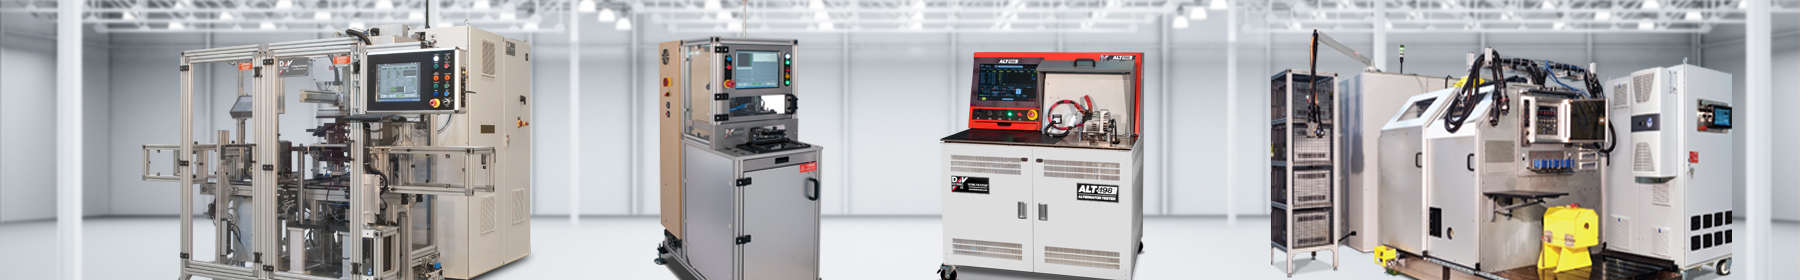 Photo of solenoid, alternator, and power train testing systems